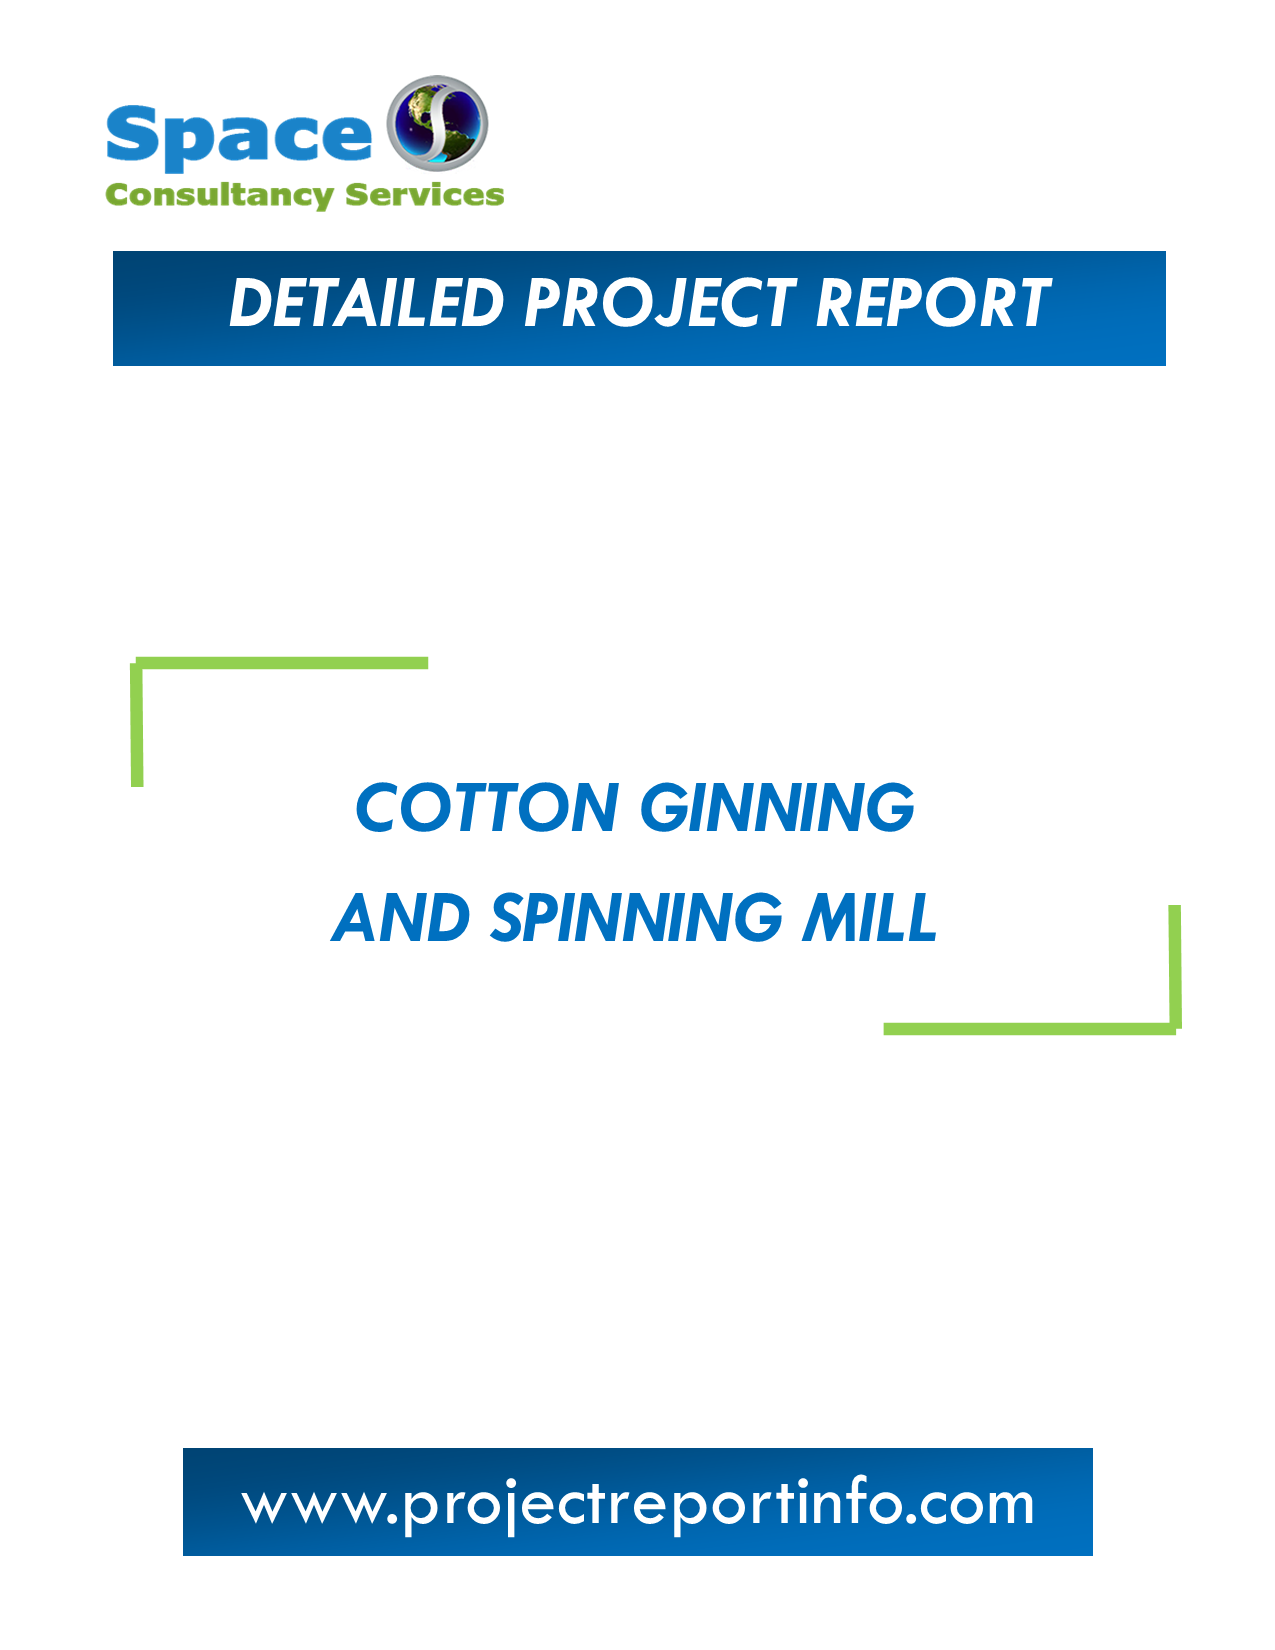 Project Report on Cotton Ginning and Spinning Mill